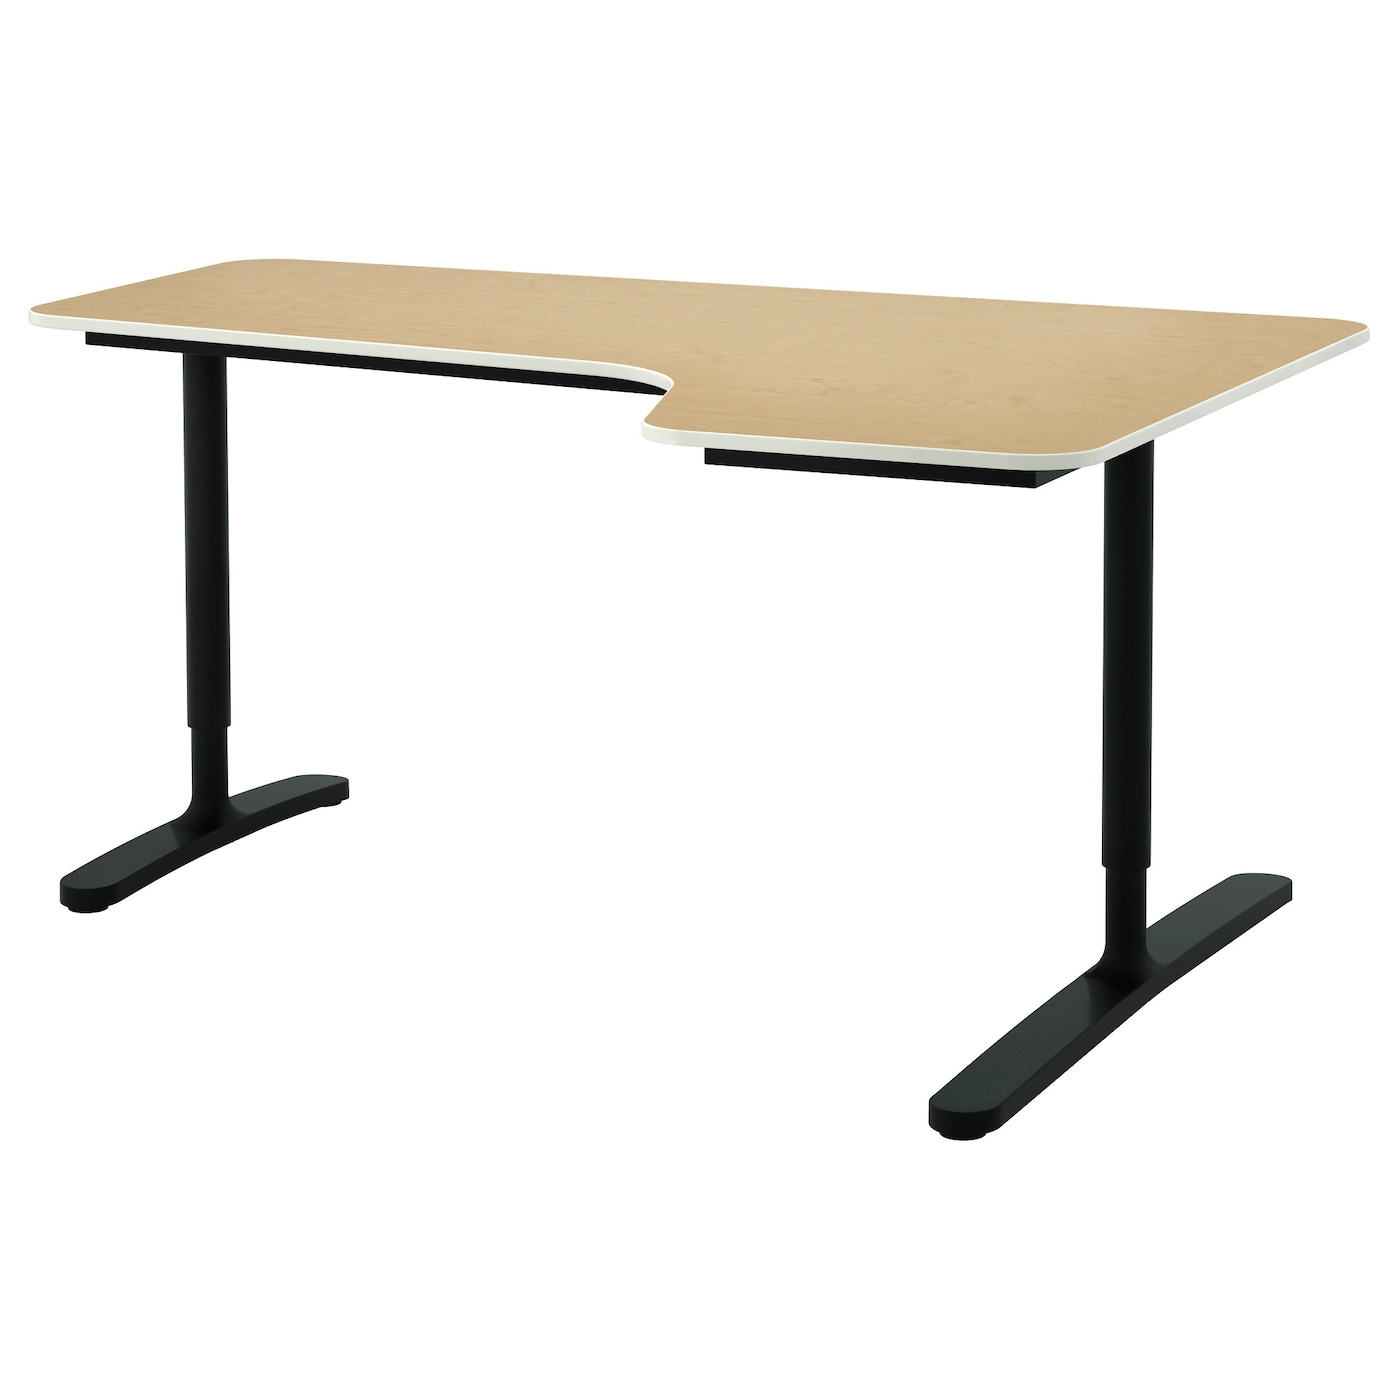 IKEA BEKANT corner desk right 10 year guarantee. Read about the terms in the guarantee brochure.